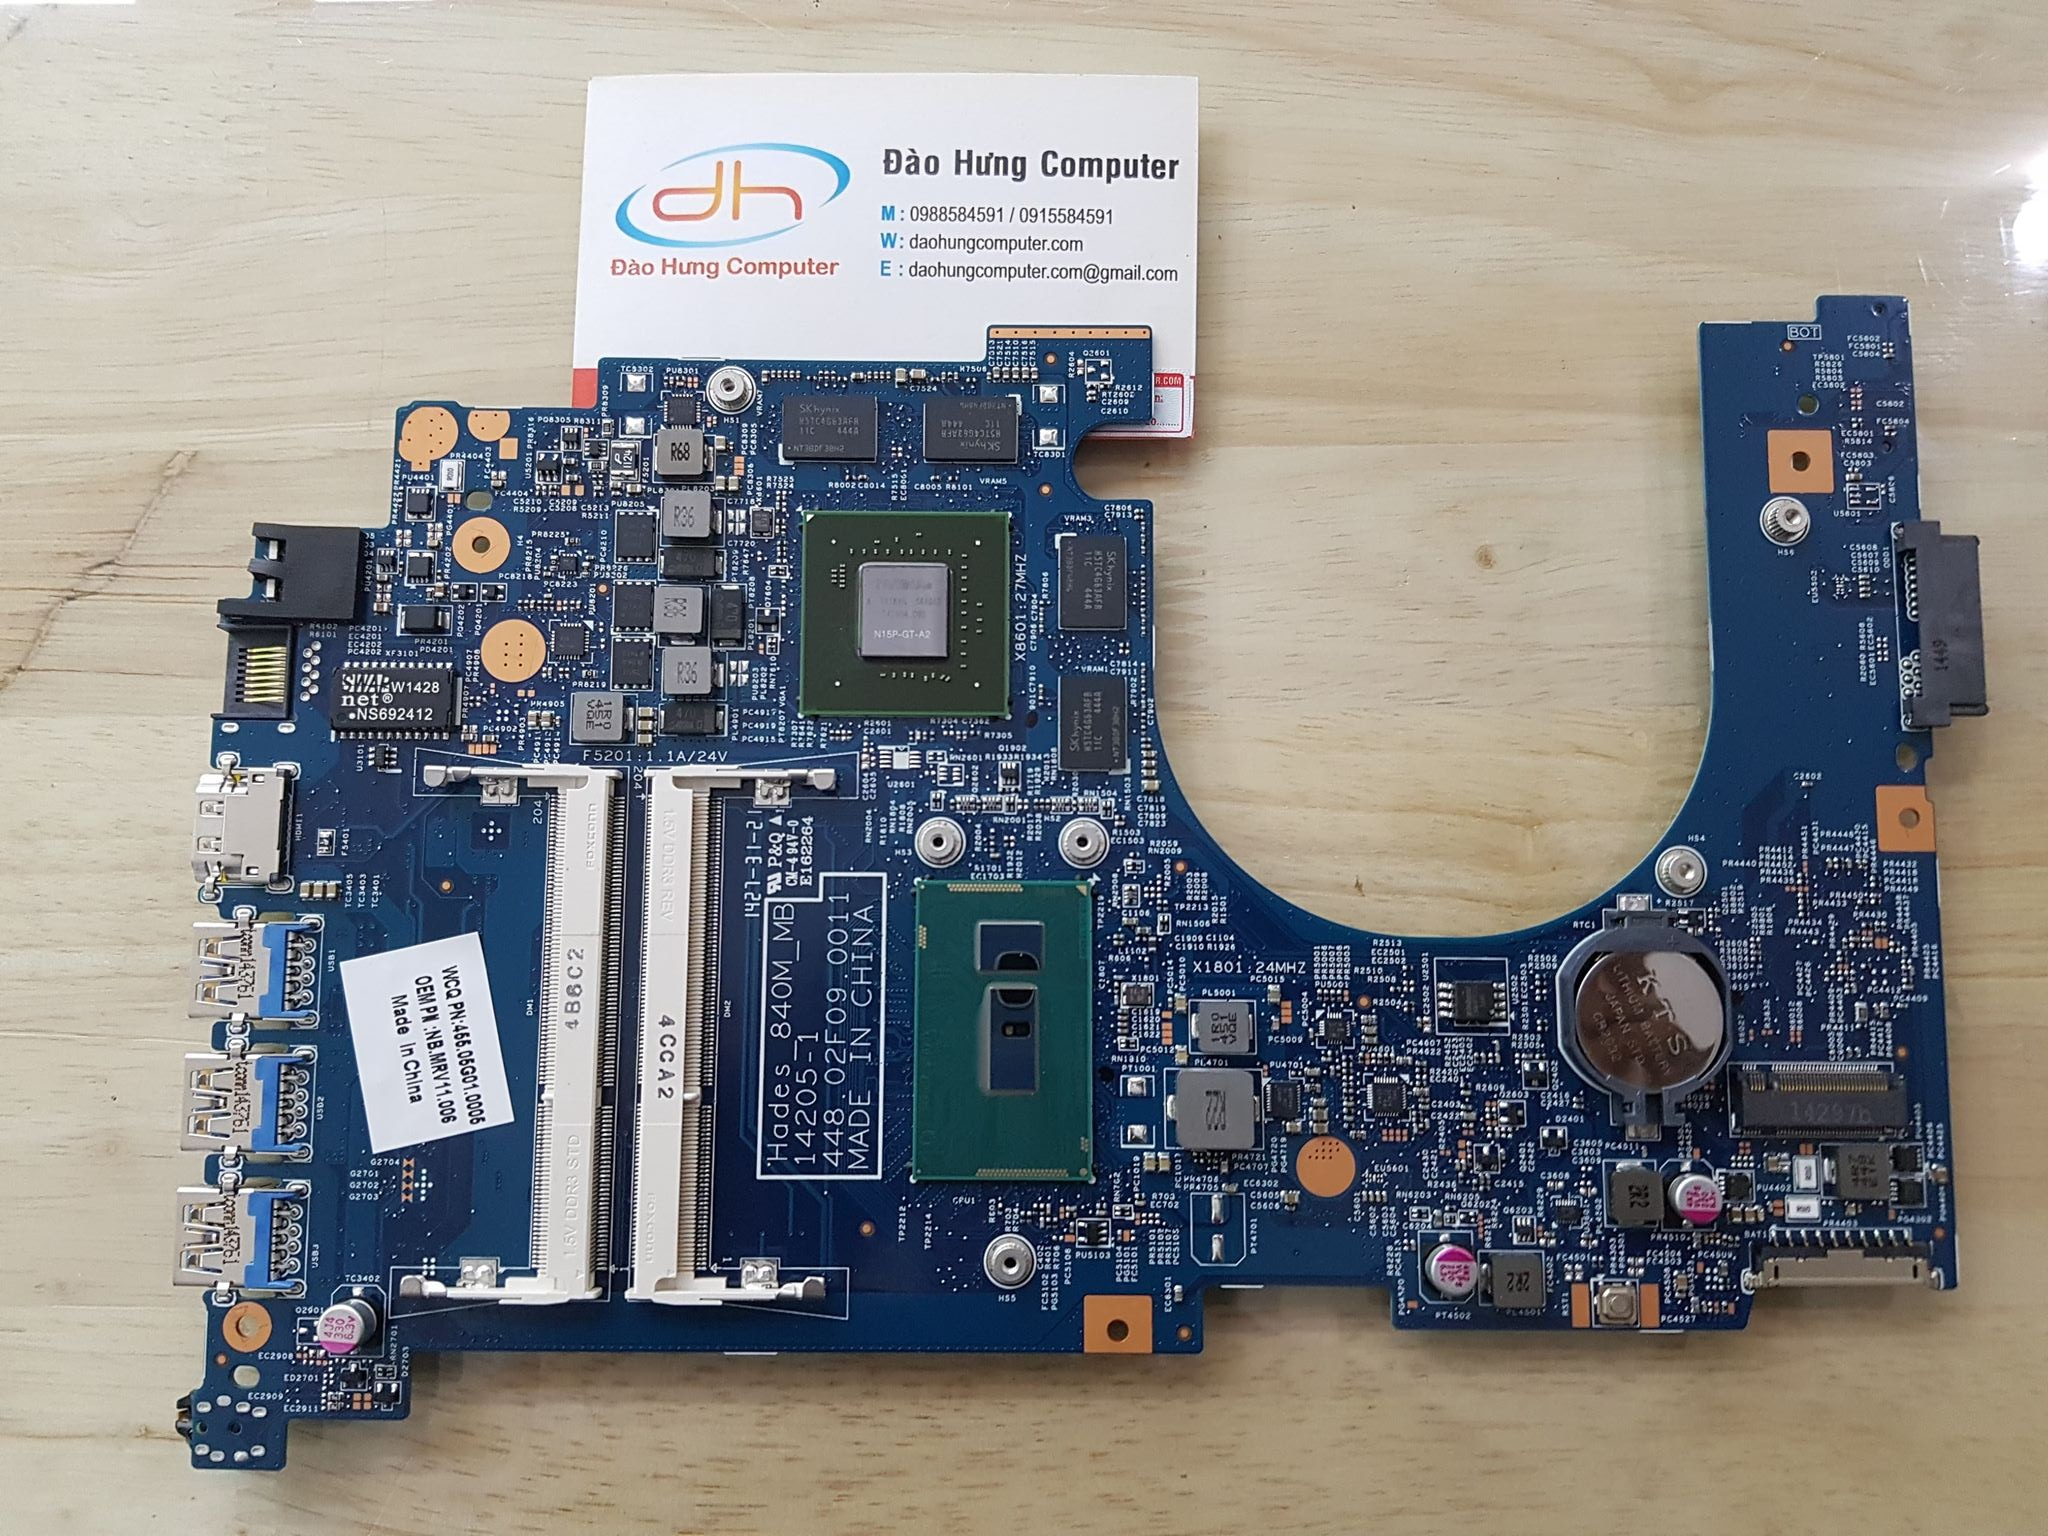 mainboard-acer-nitro-vn7-571g-core-i5-5200u-gt940m-14205-1